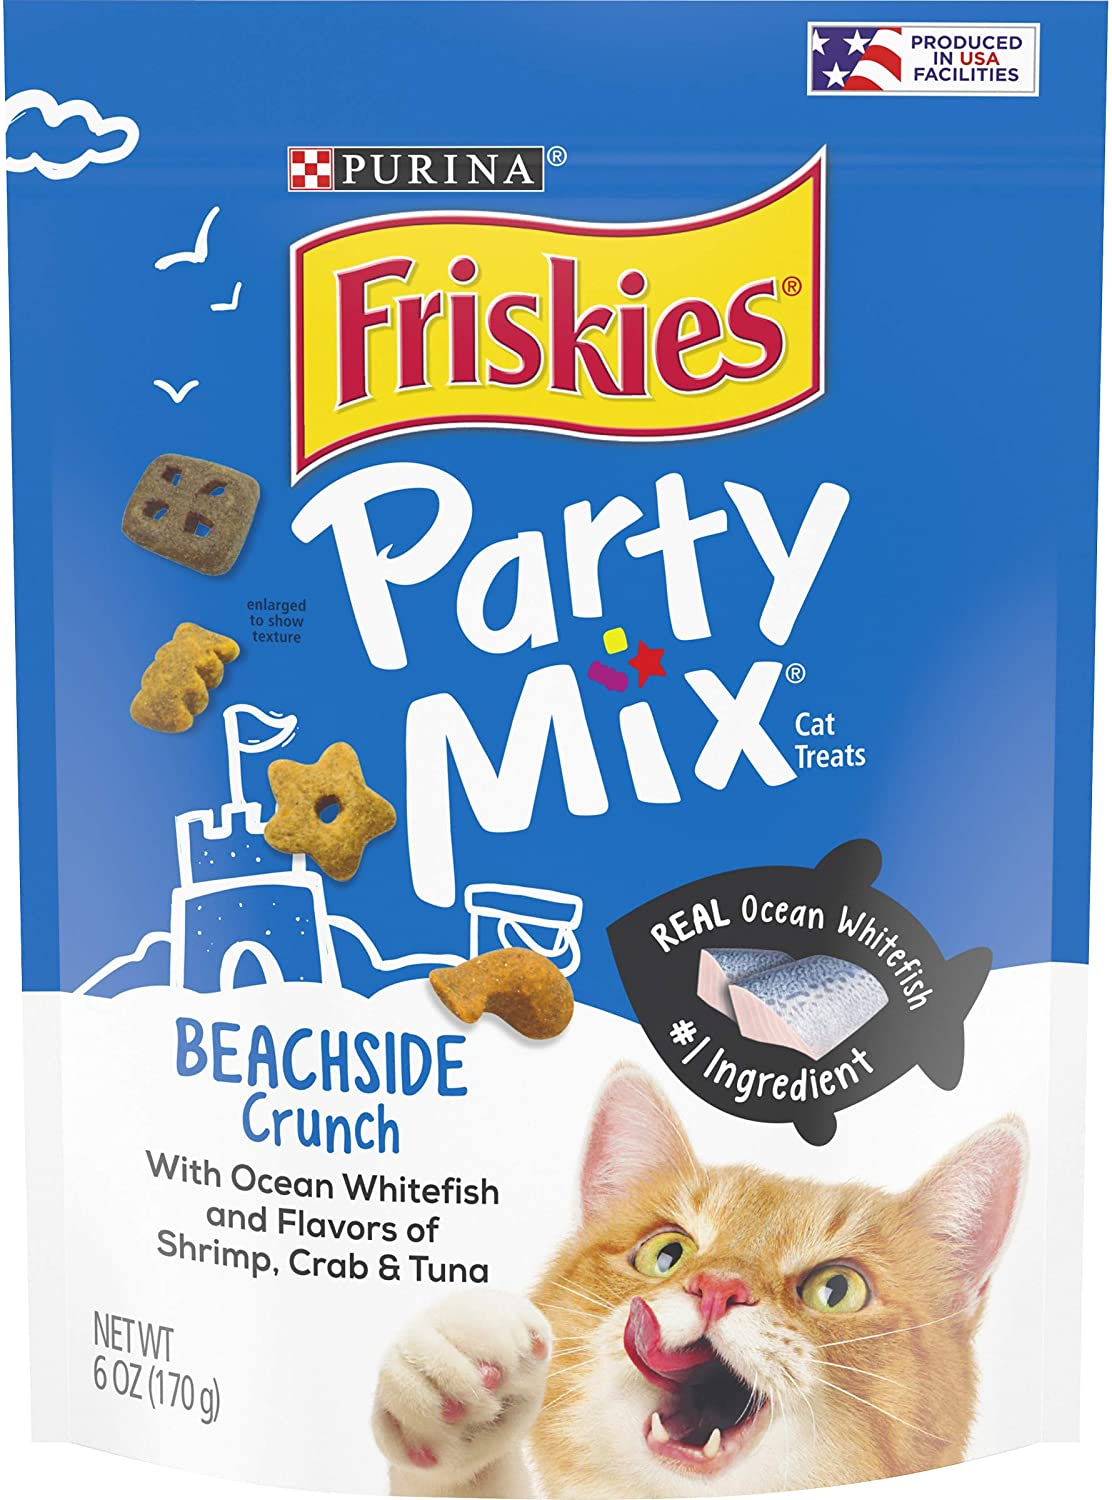 Purina Friskies Made in USA Facilities Cat Treats, Party Mix Beachside Crunch - (6) 6 oz. Pouches